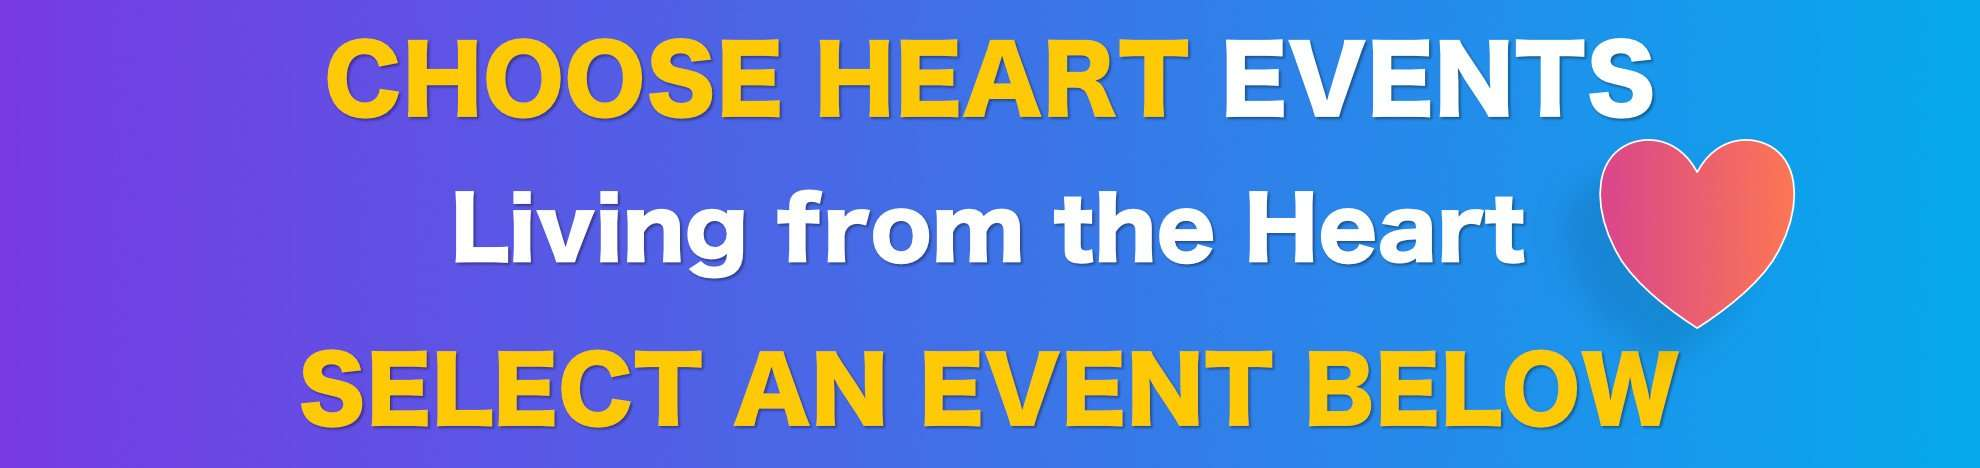 Choose Heart Events | Dirk Terpstra